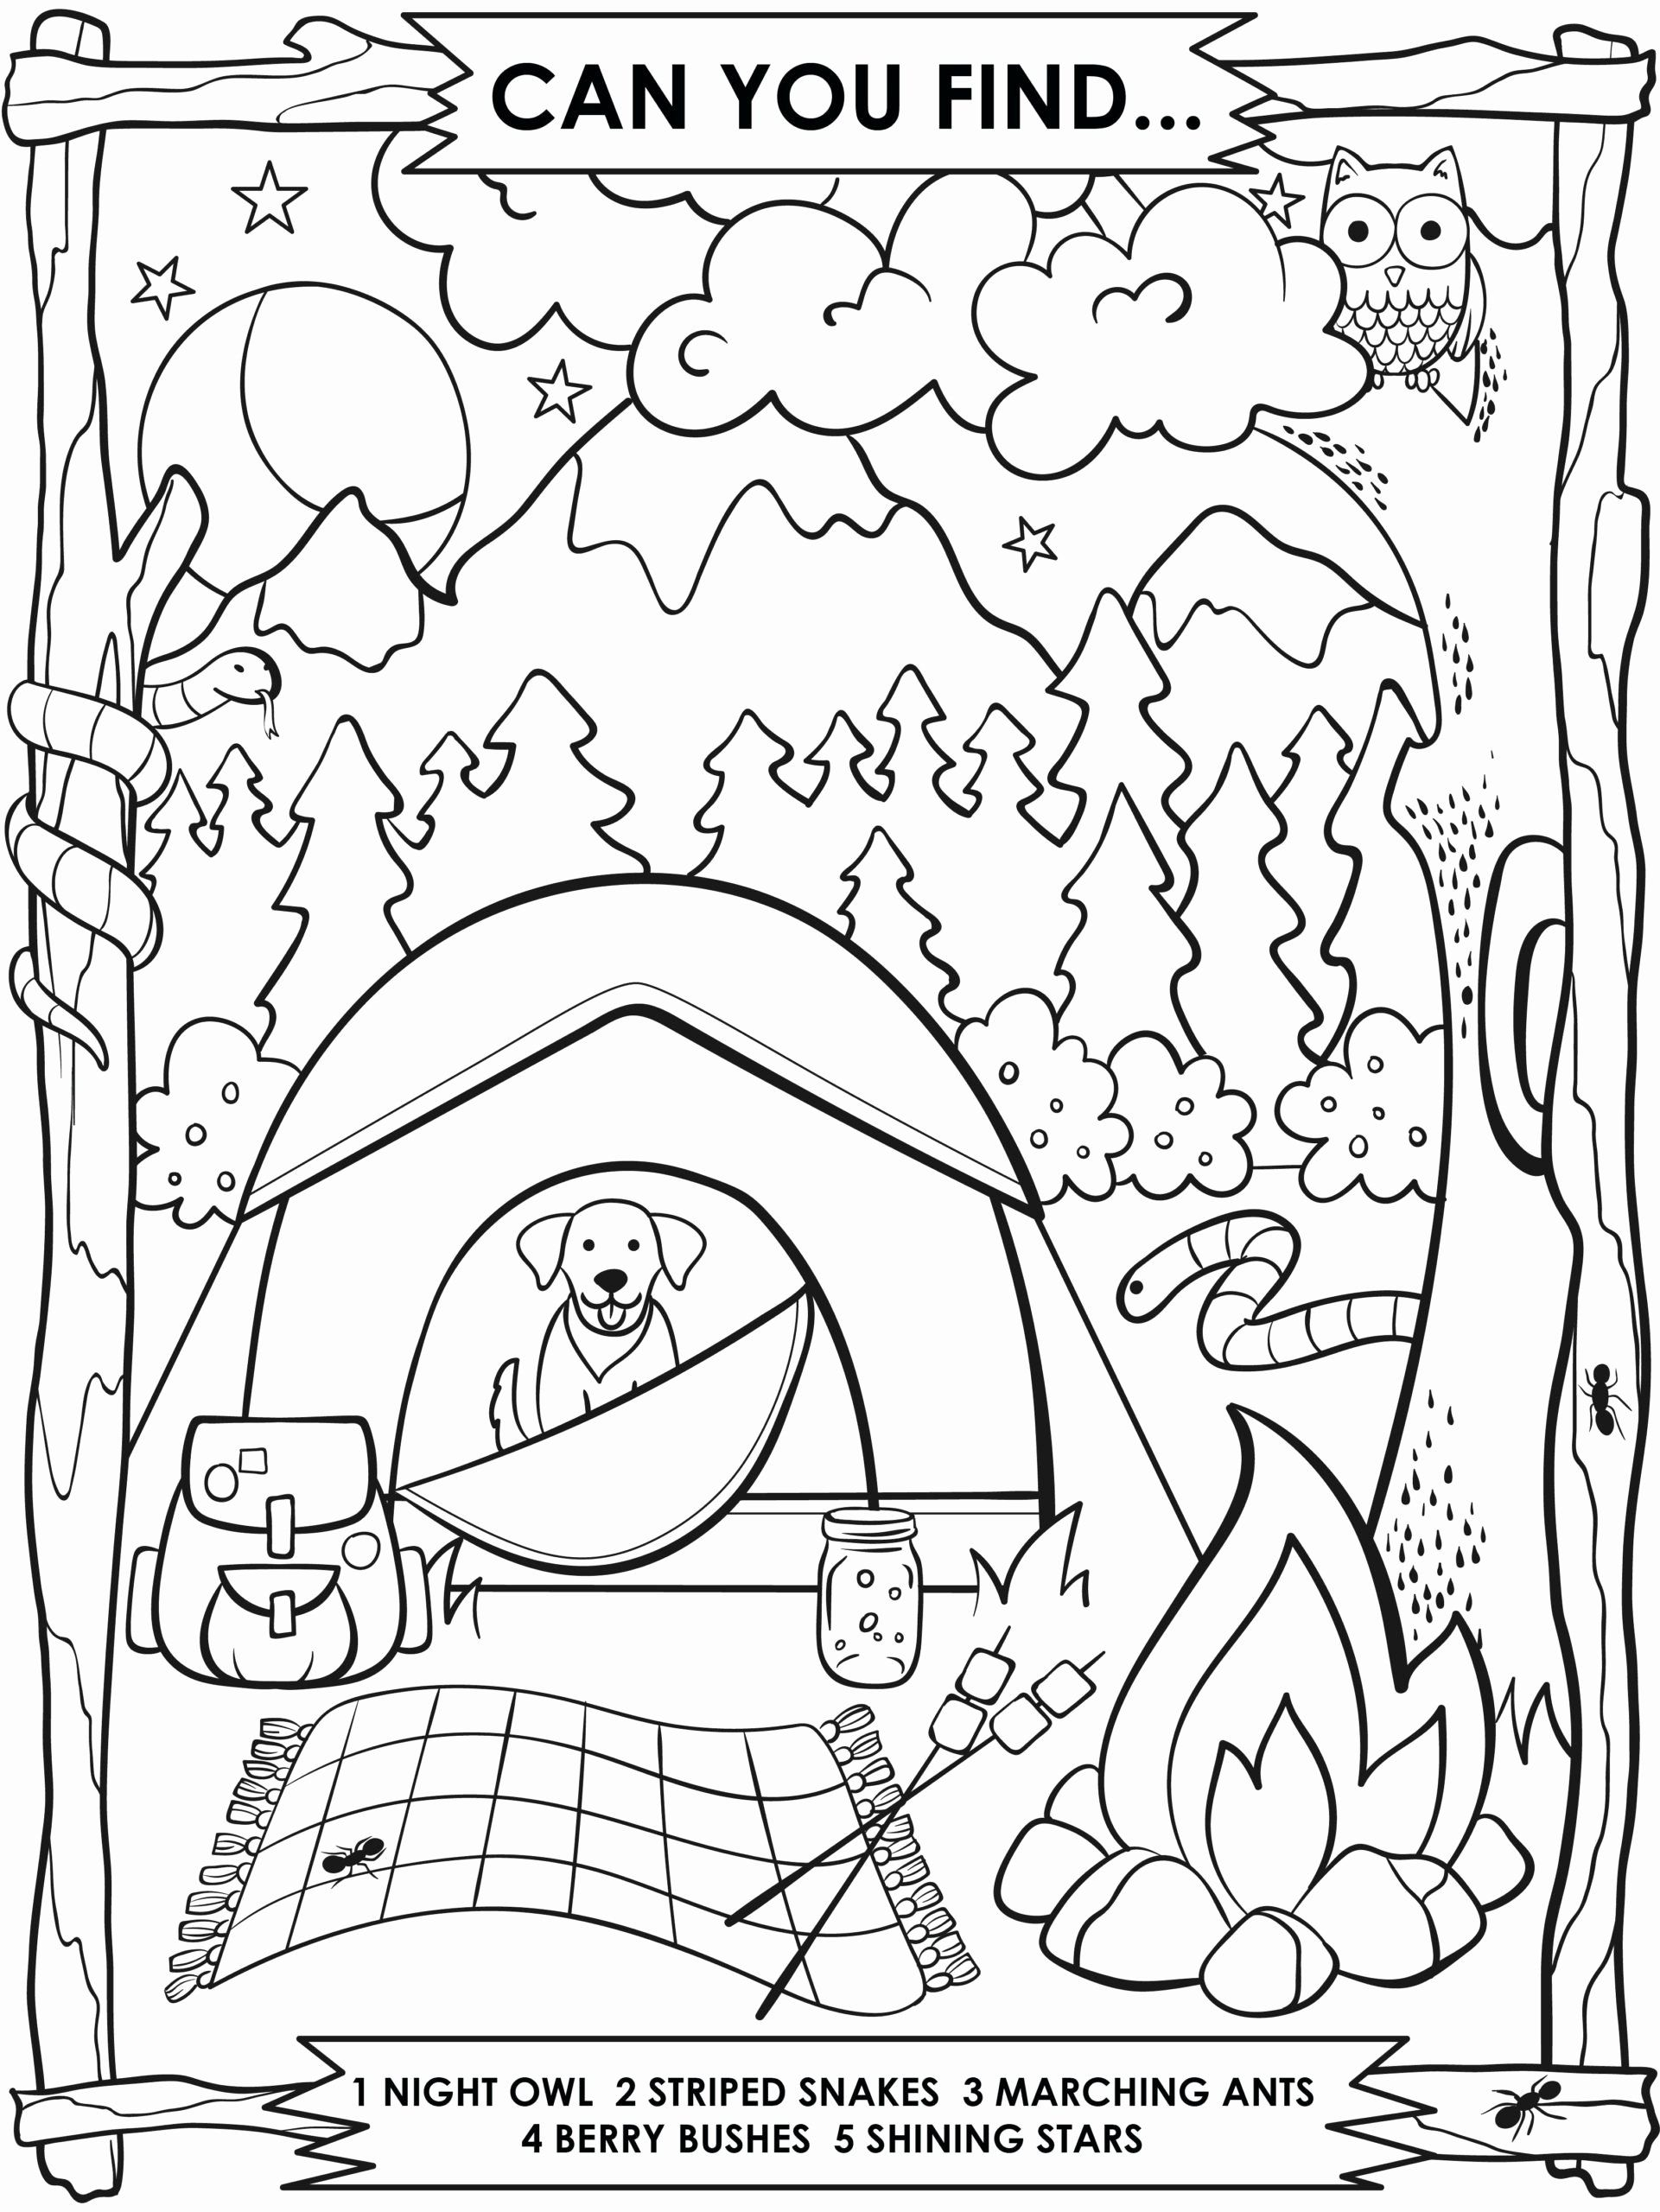 Summer Safety Coloring Page In With Images